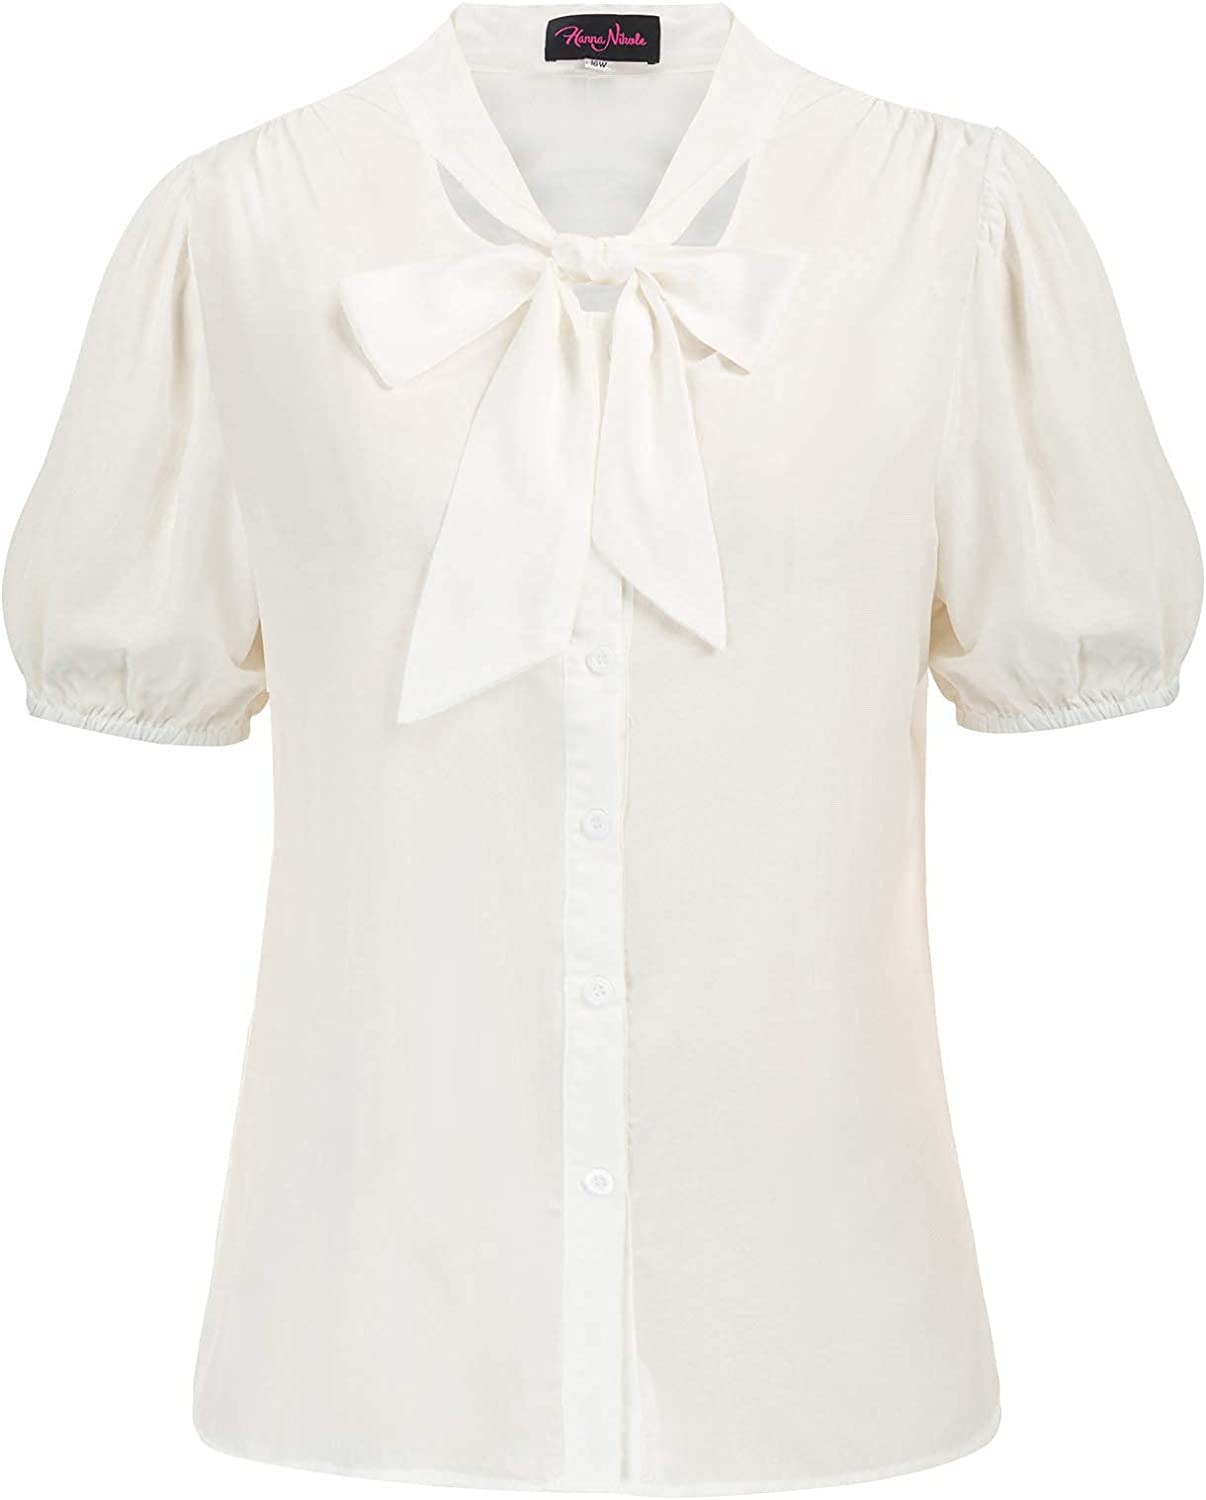 Womens Bow Tie Neck Short Sleeve Shirts Plus Size Casual Office Work Blouse Tops